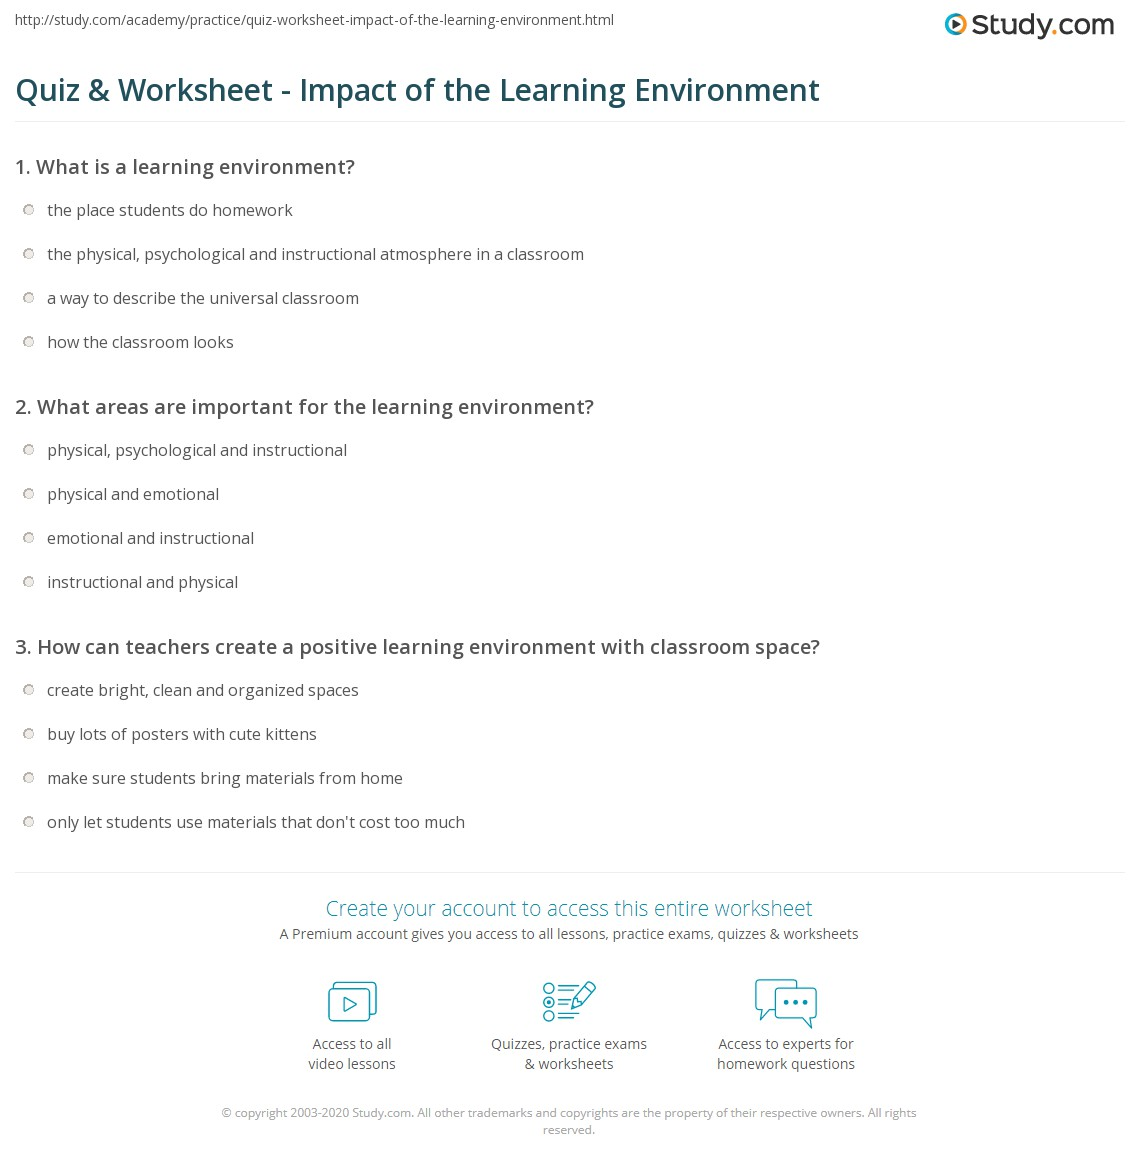 Quiz & Worksheet - Impact of the Learning Environment | Study com